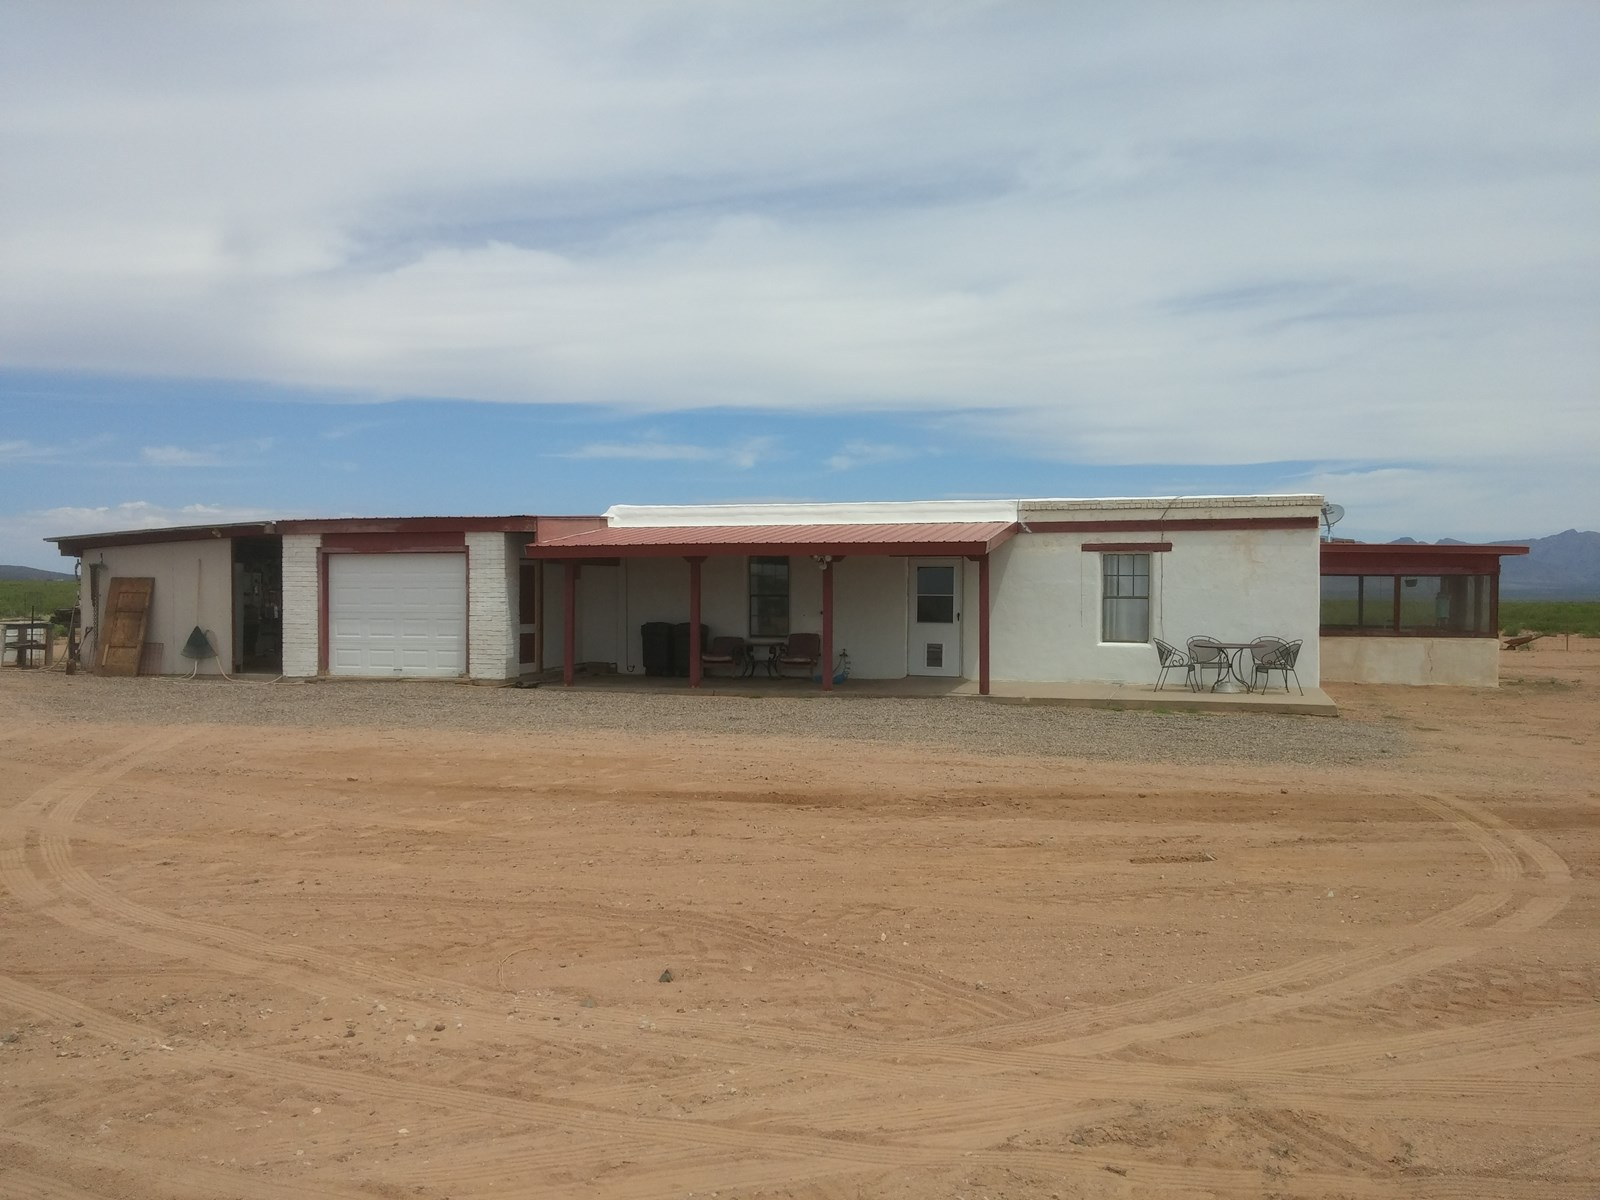 Desert property in Deming NM